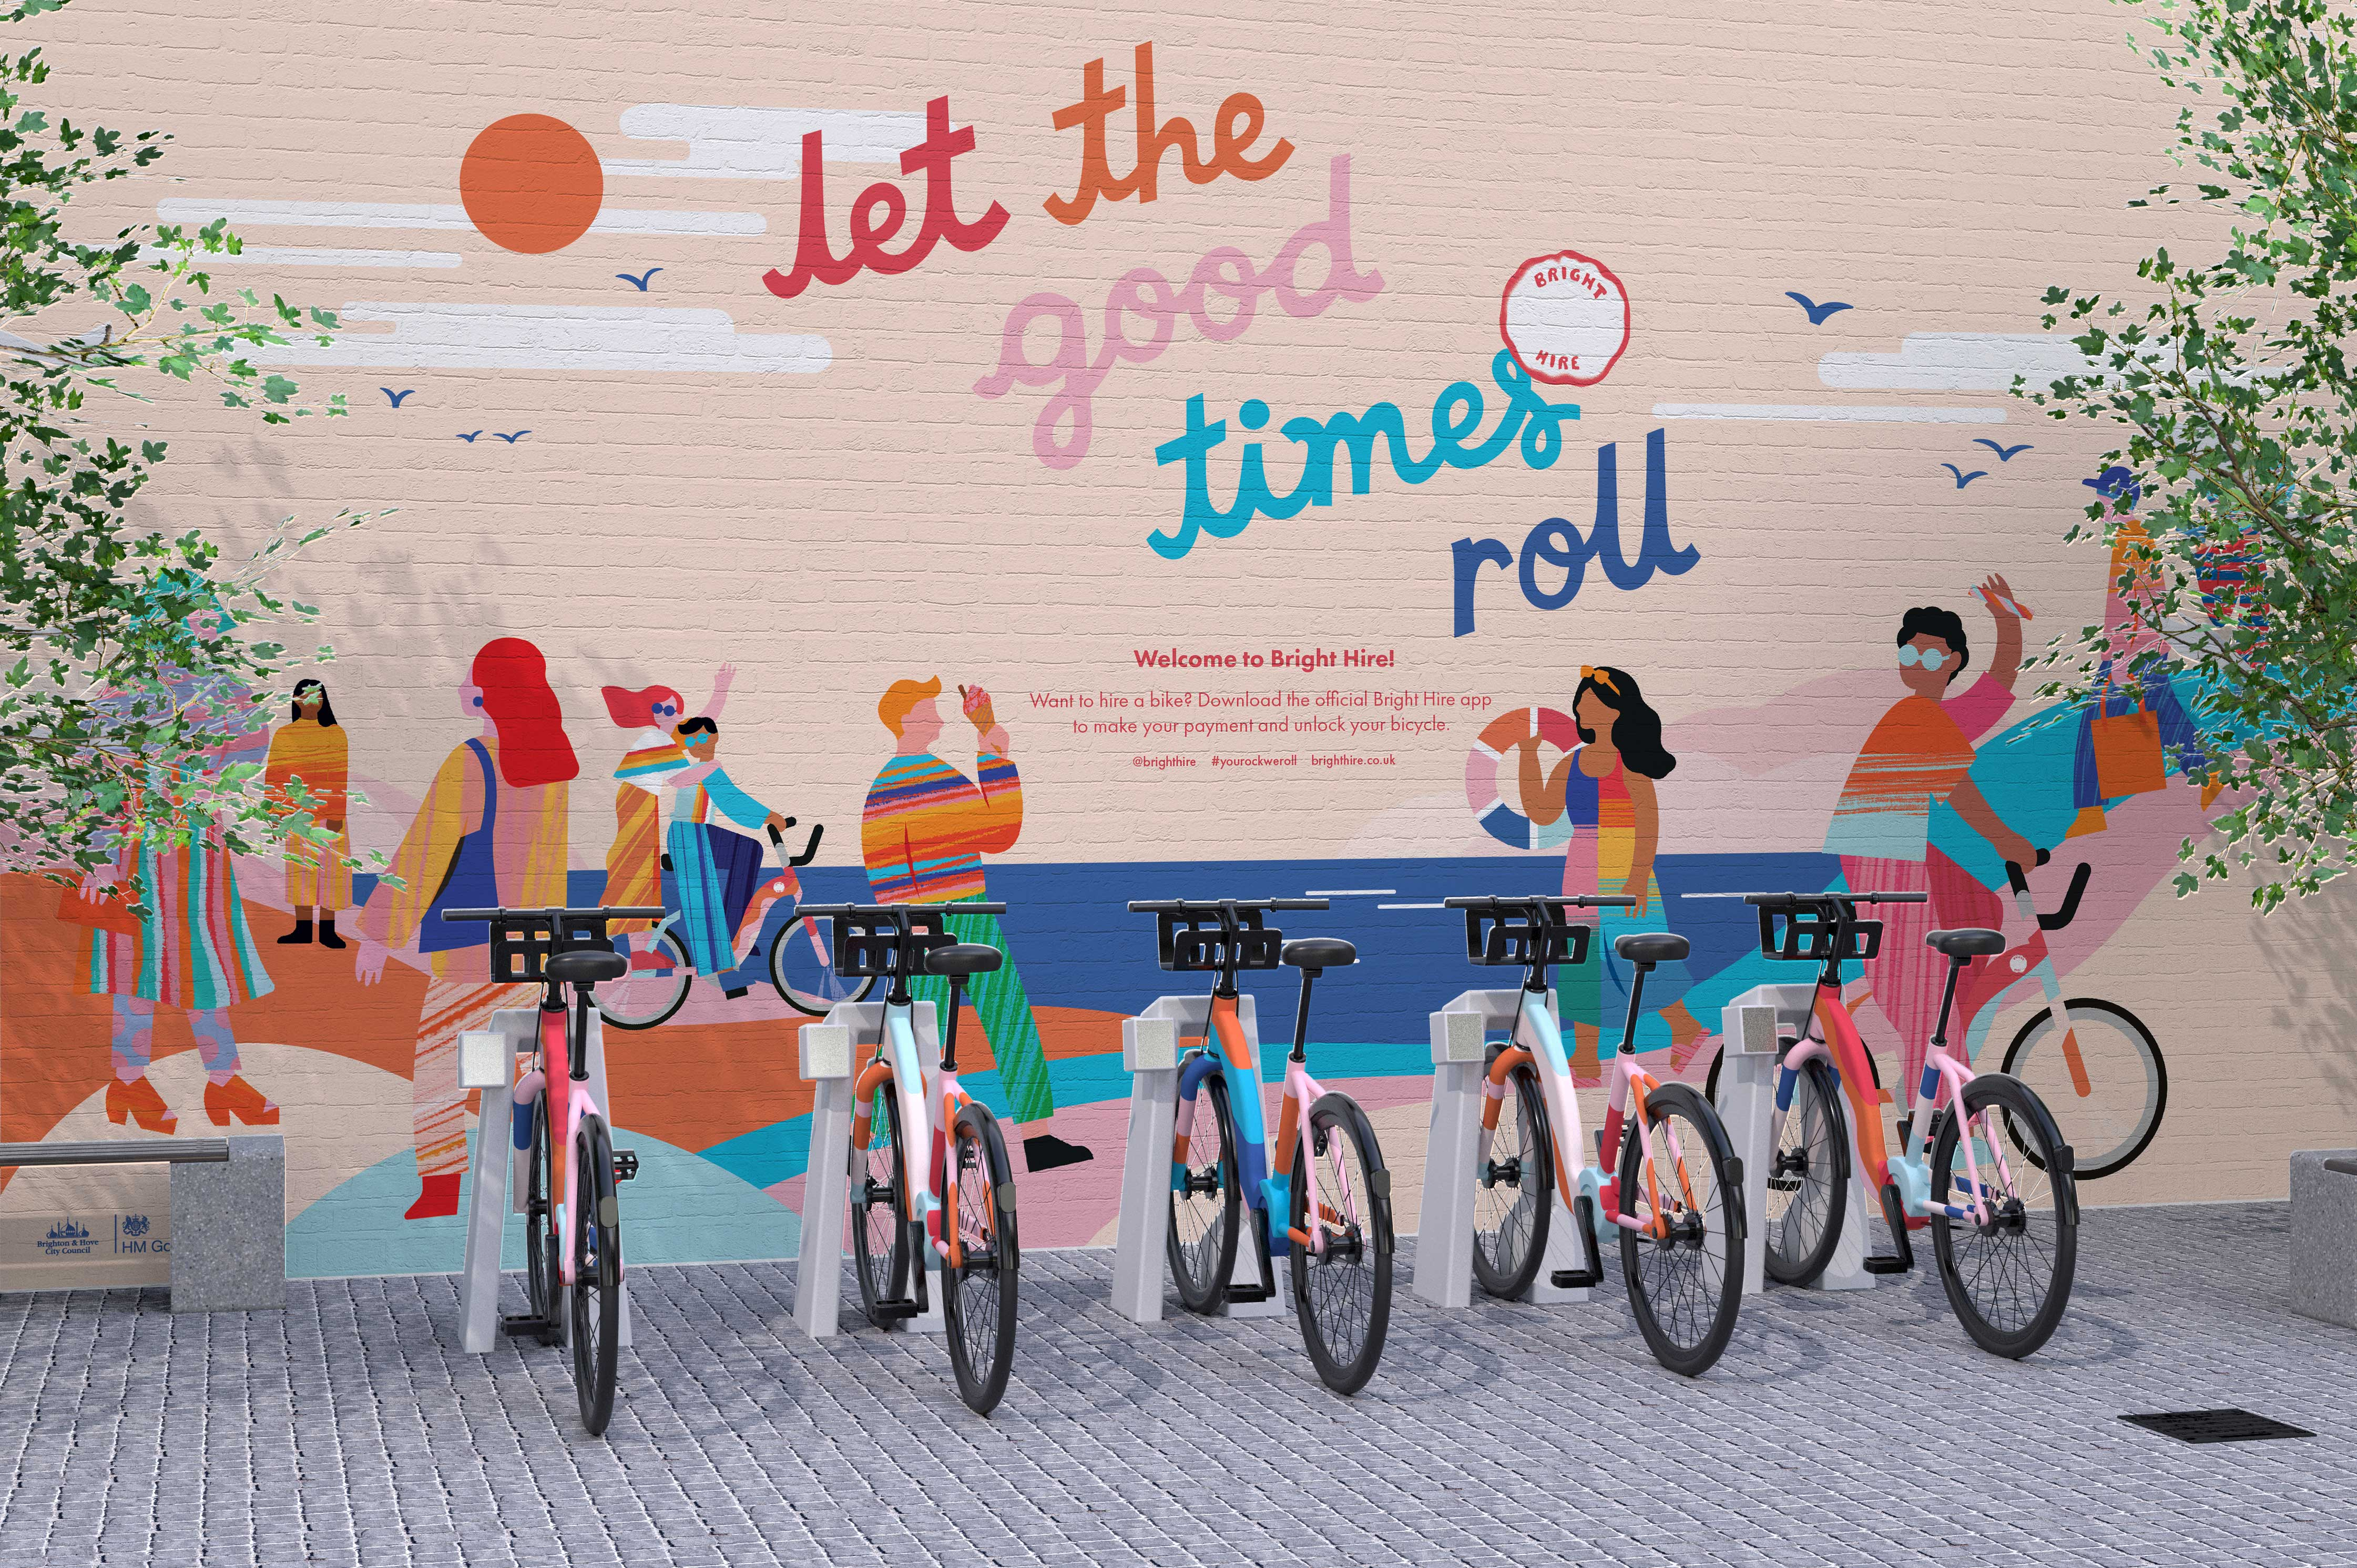 Stick-of-rock Inspired Identity for Brighton-Based Bike Hire Scheme